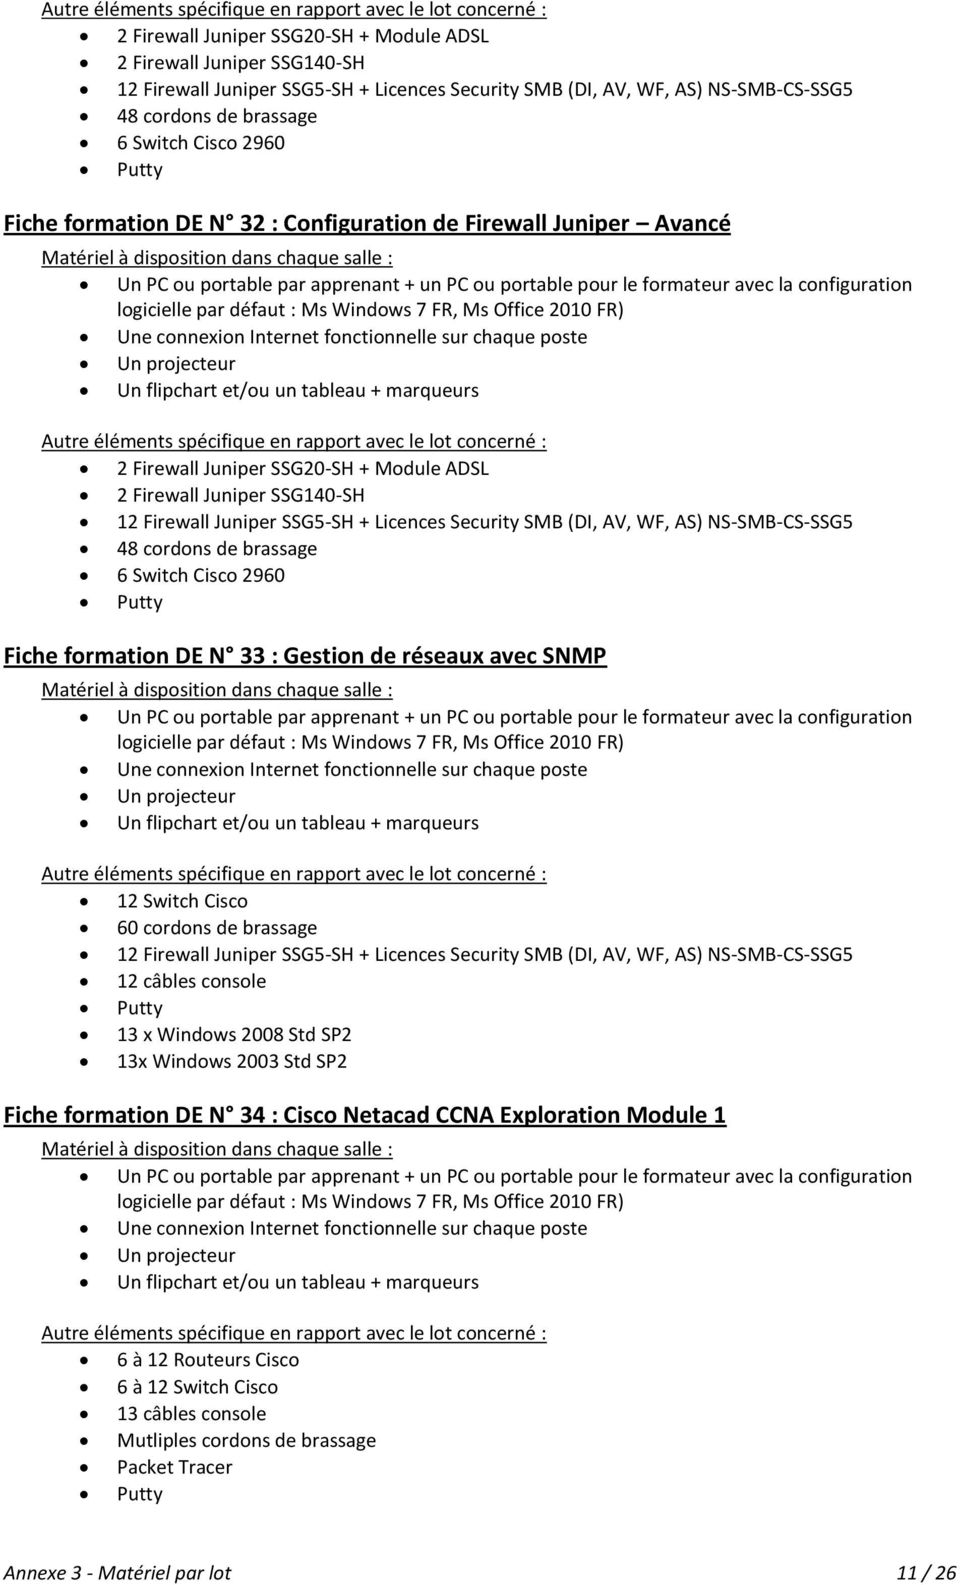 SSG5-SH + Licences Security SMB (DI, AV, WF, AS) NS-SMB-CS-SSG5 12 câbles console Putty 13 x Windows 2008 Std SP2 13x Windows 2003 Std SP2 Fiche formation DE N 34 : Cisco Netacad CCNA Exploration